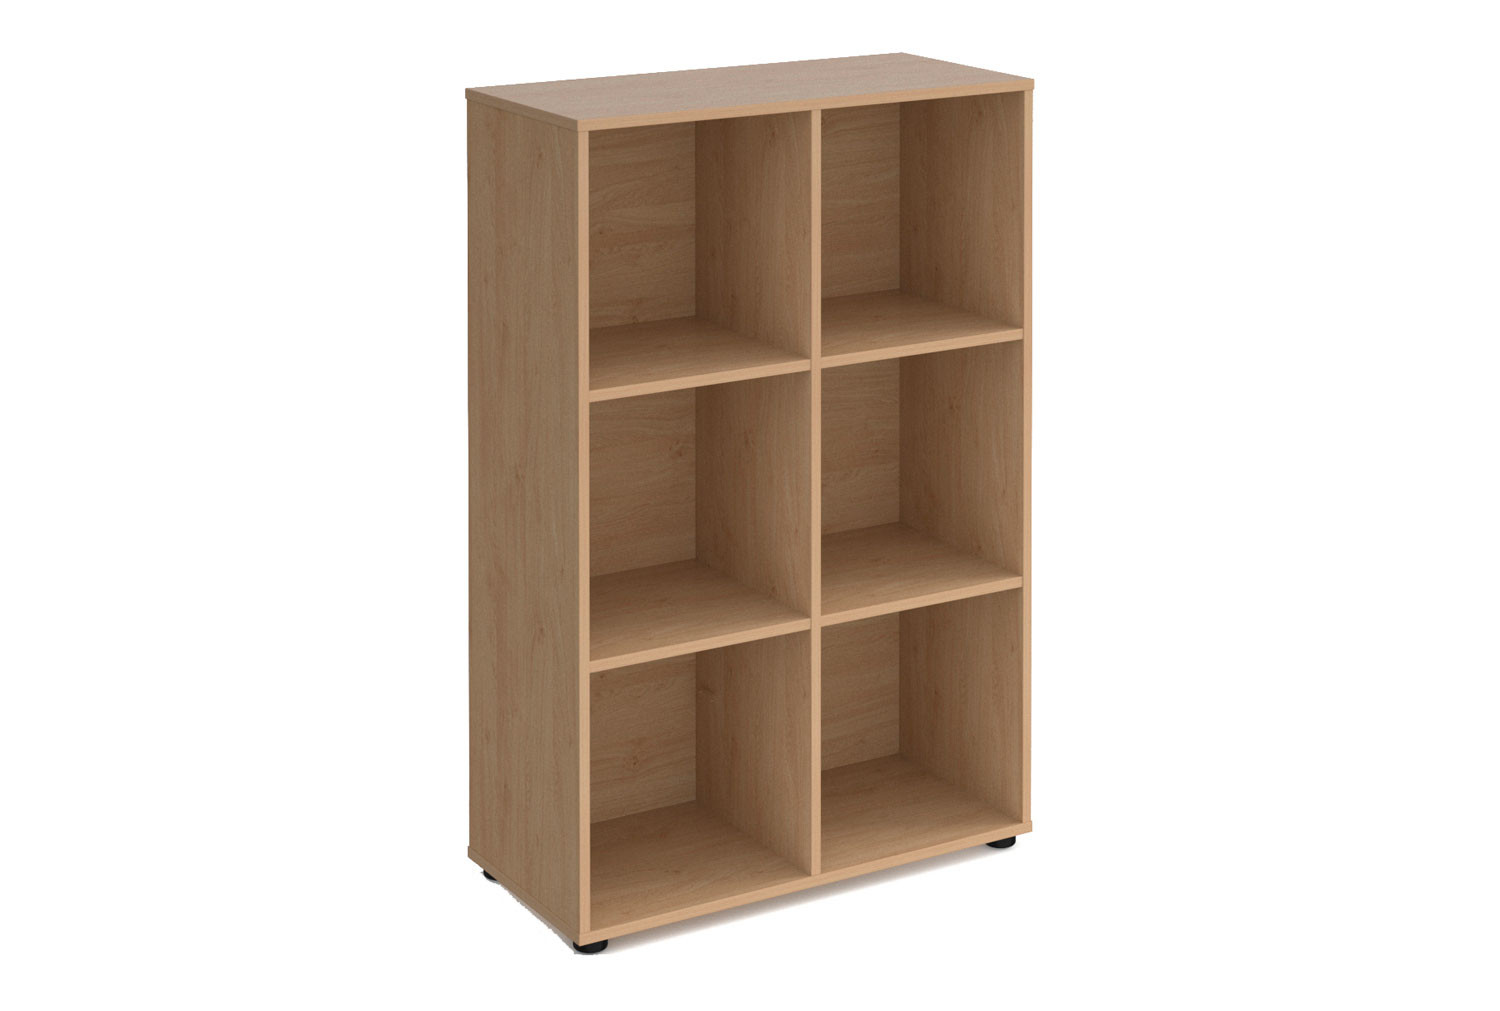 Brick Home Office 6 Cube Storage Unit (Vertical)